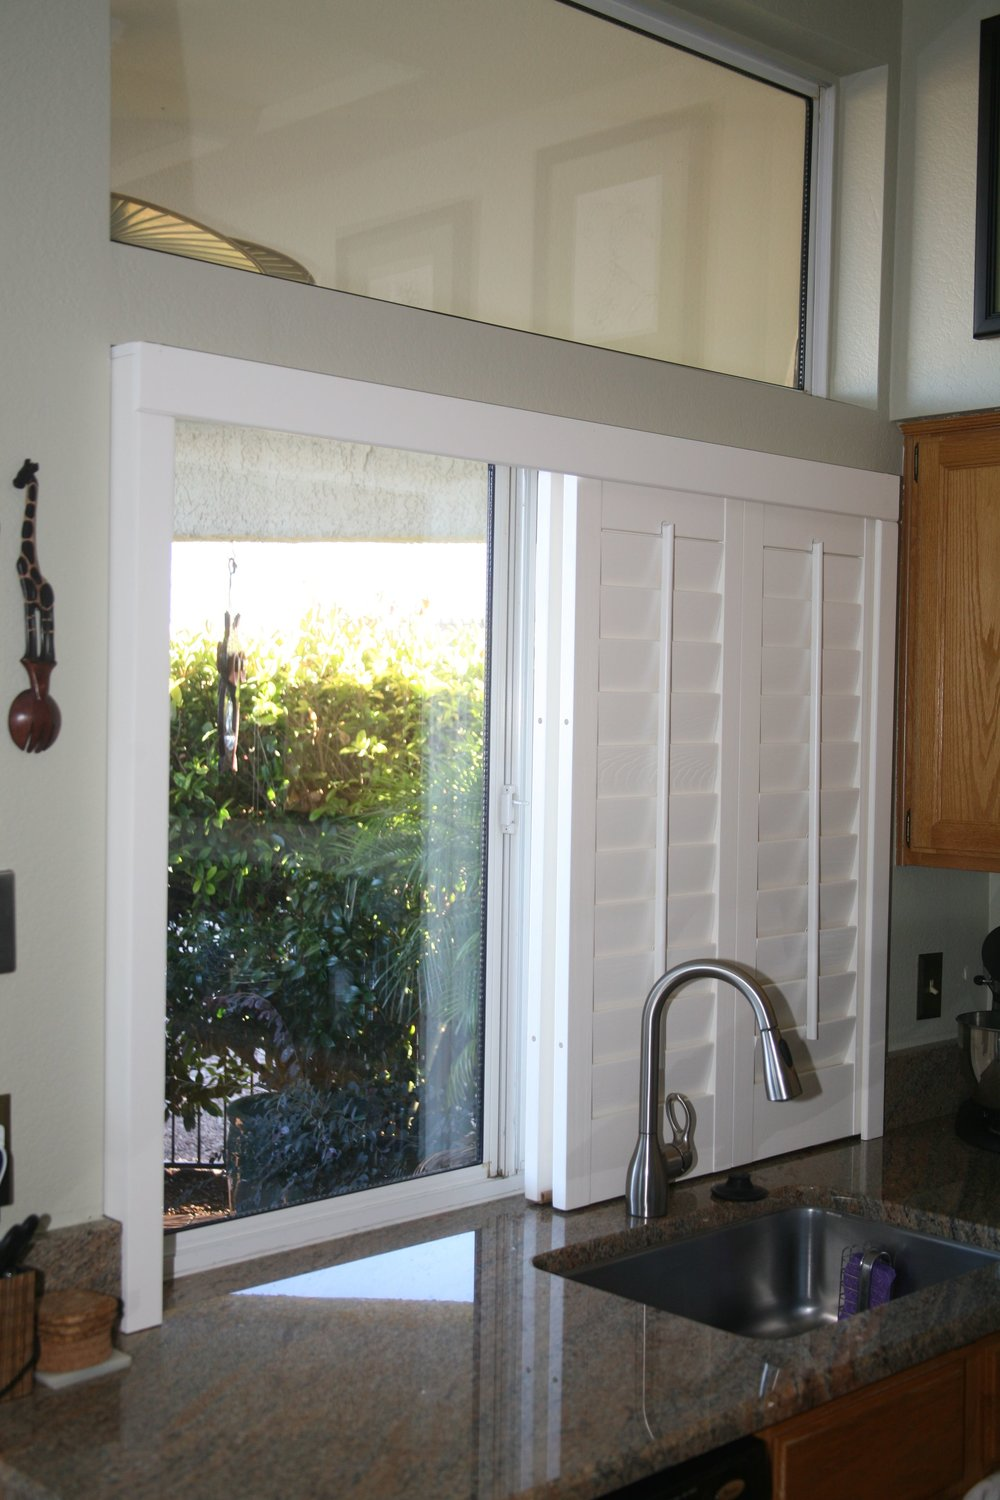 Bypass sliding panels make seeing out of windows easier in comparison to swinging shutter doors.